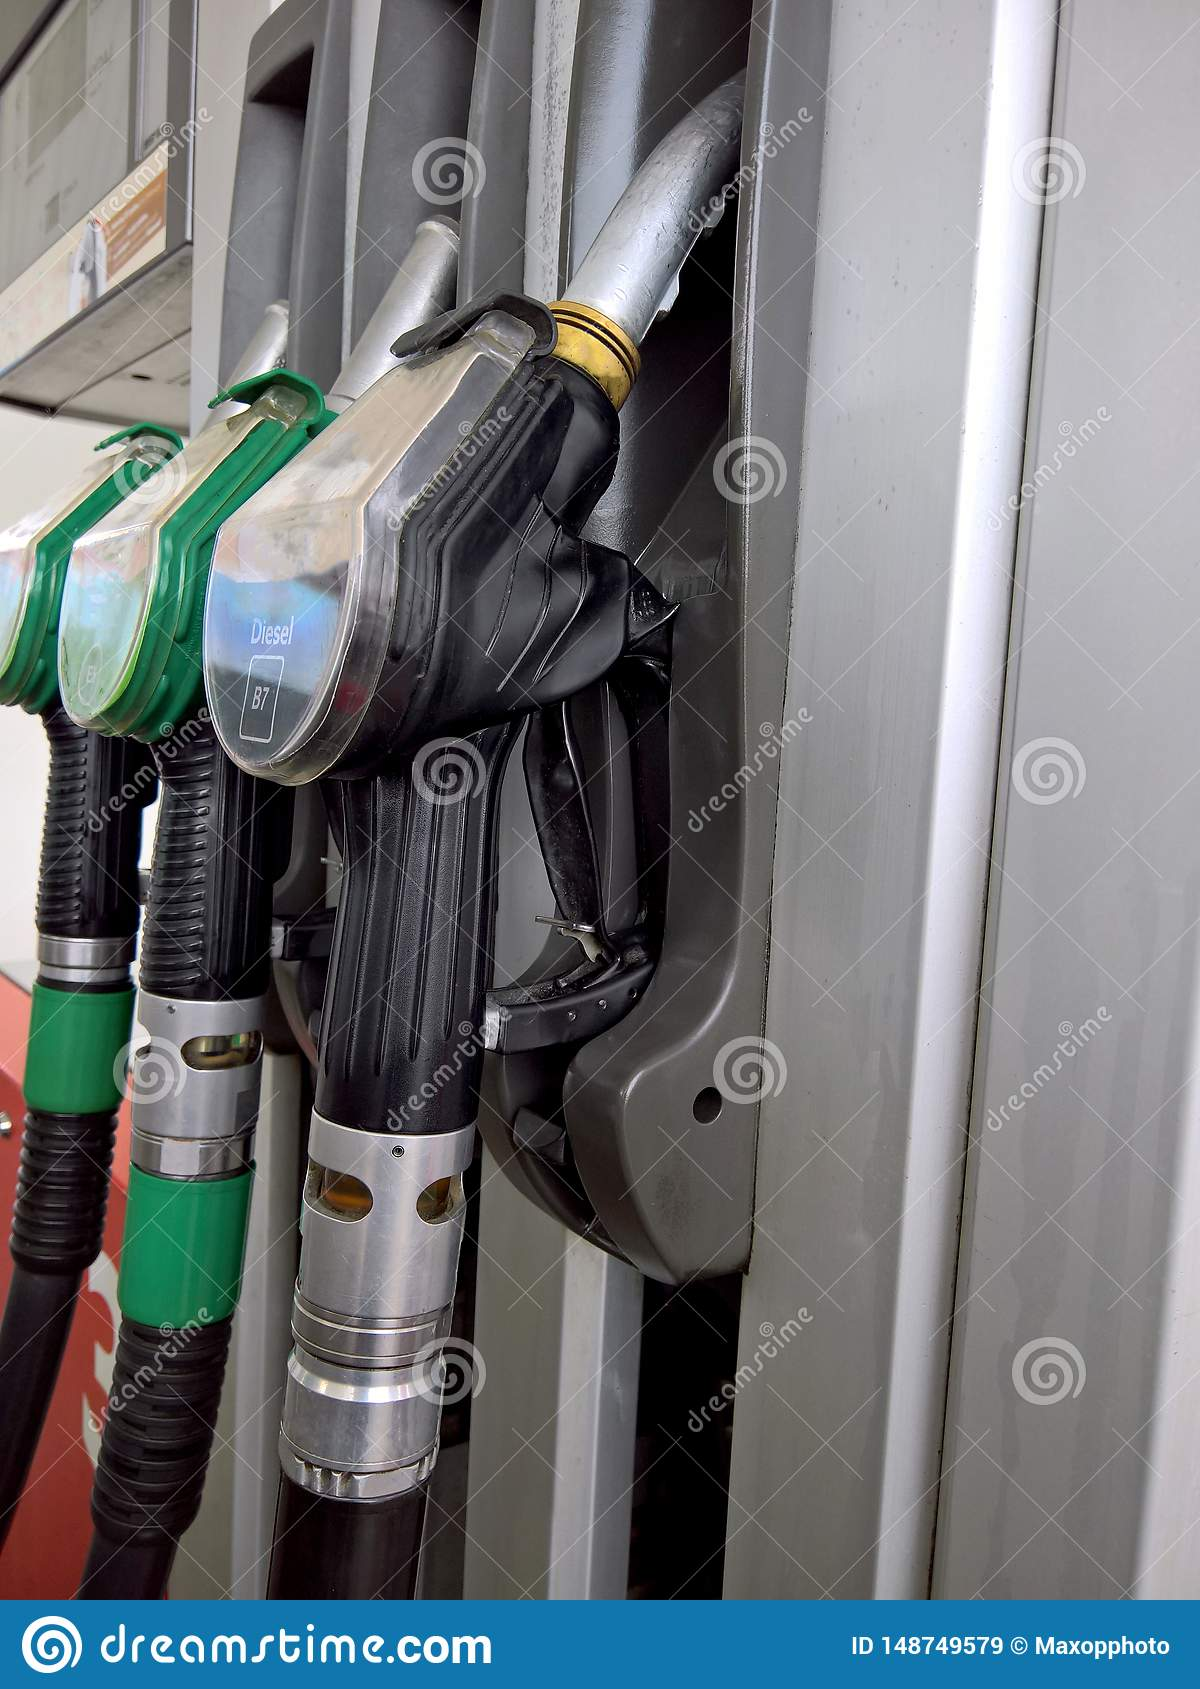 Fuel Guns At Gas Station With Petrol And Diesel Fuel For